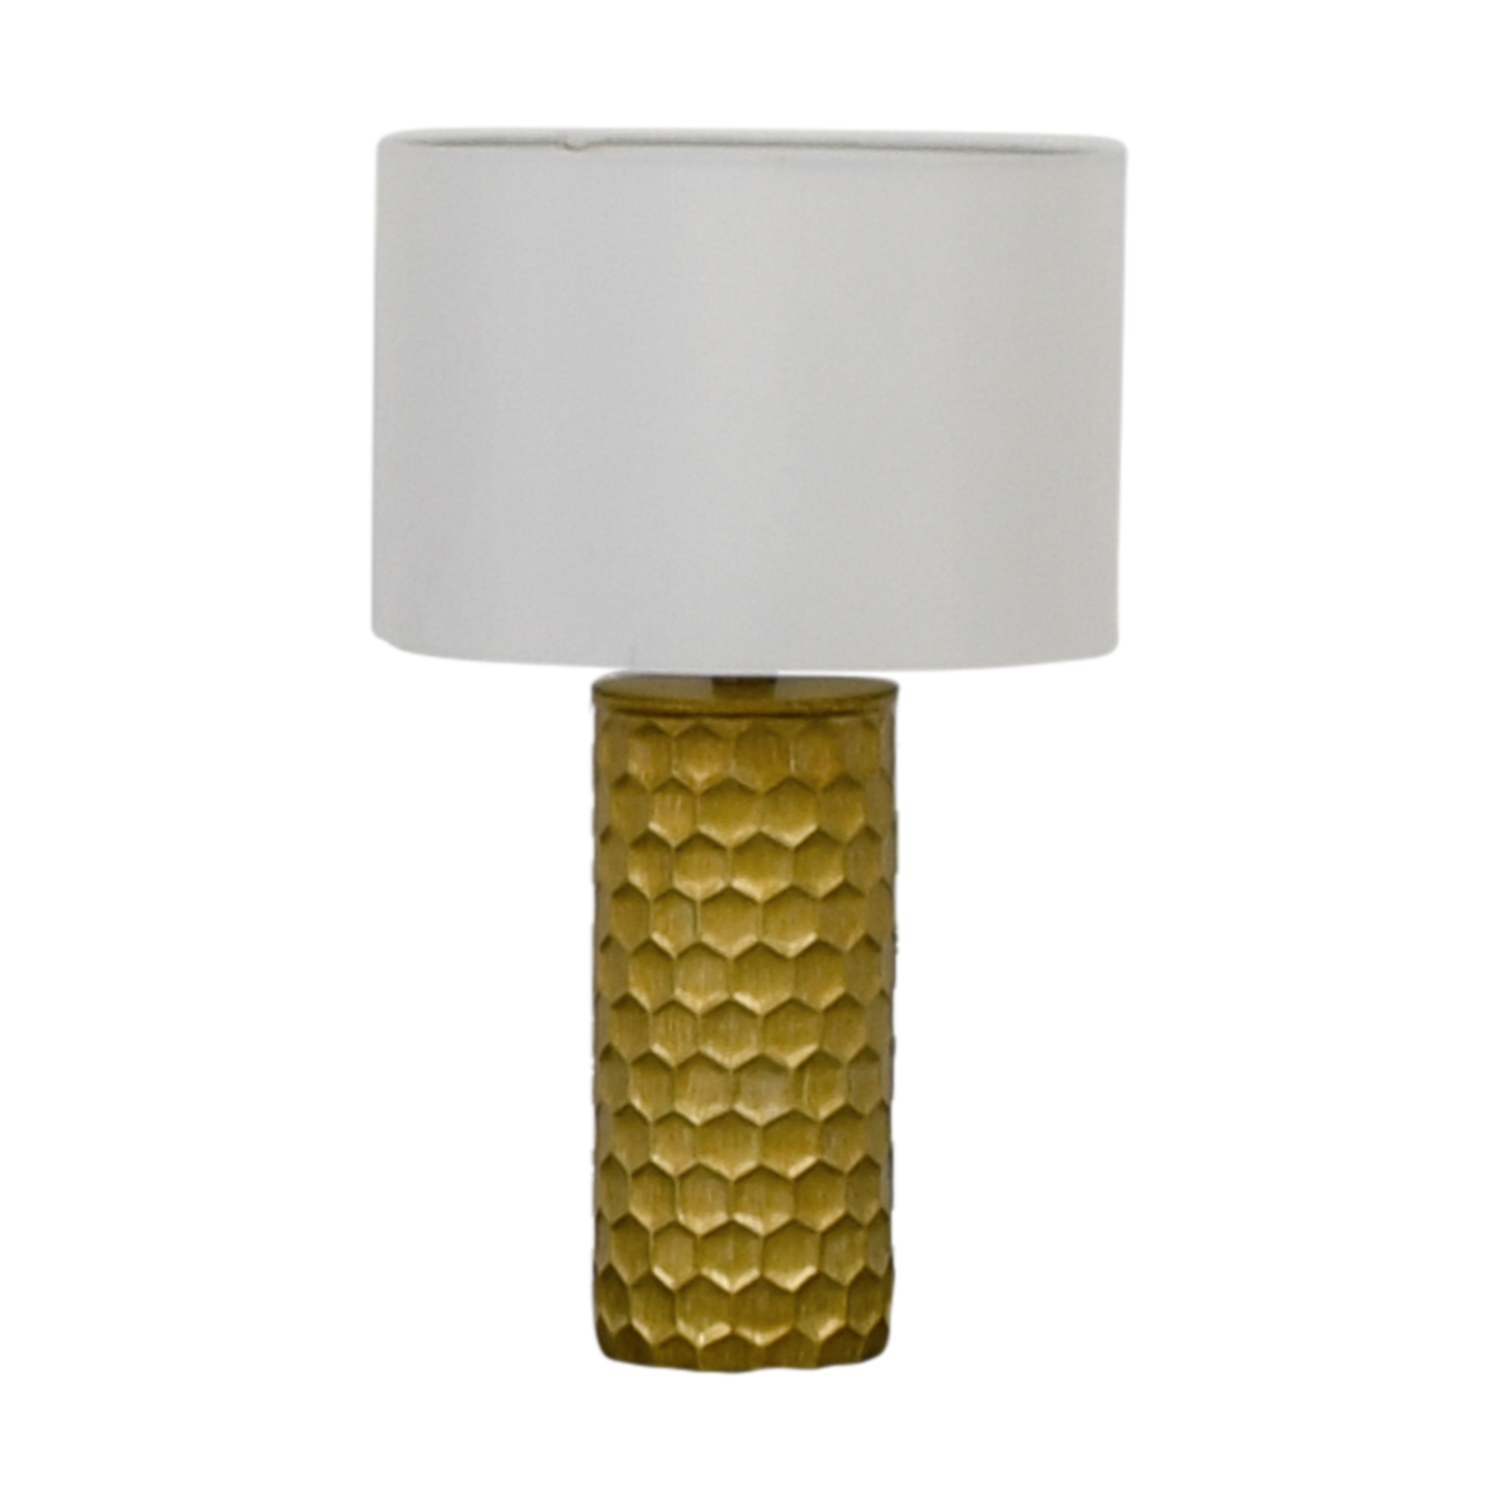 Honeycomb Gold Lamp Decor